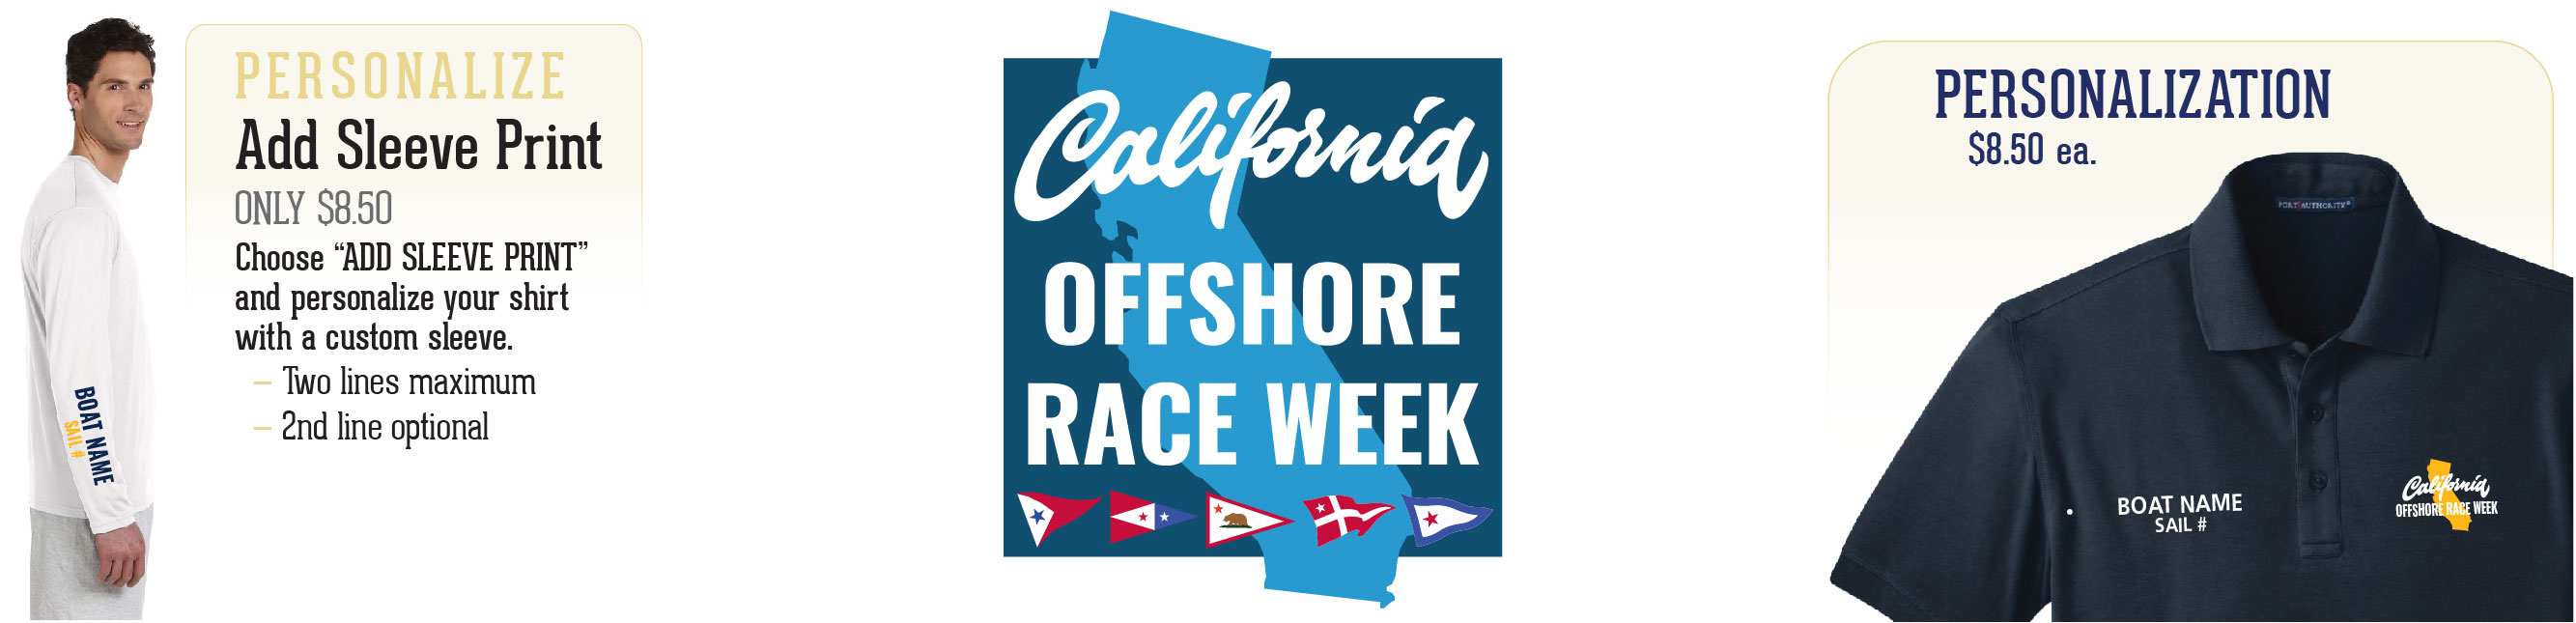 san-diego-yacht-club-california-offshore-race-week-corw-2017-banner-01.jpg